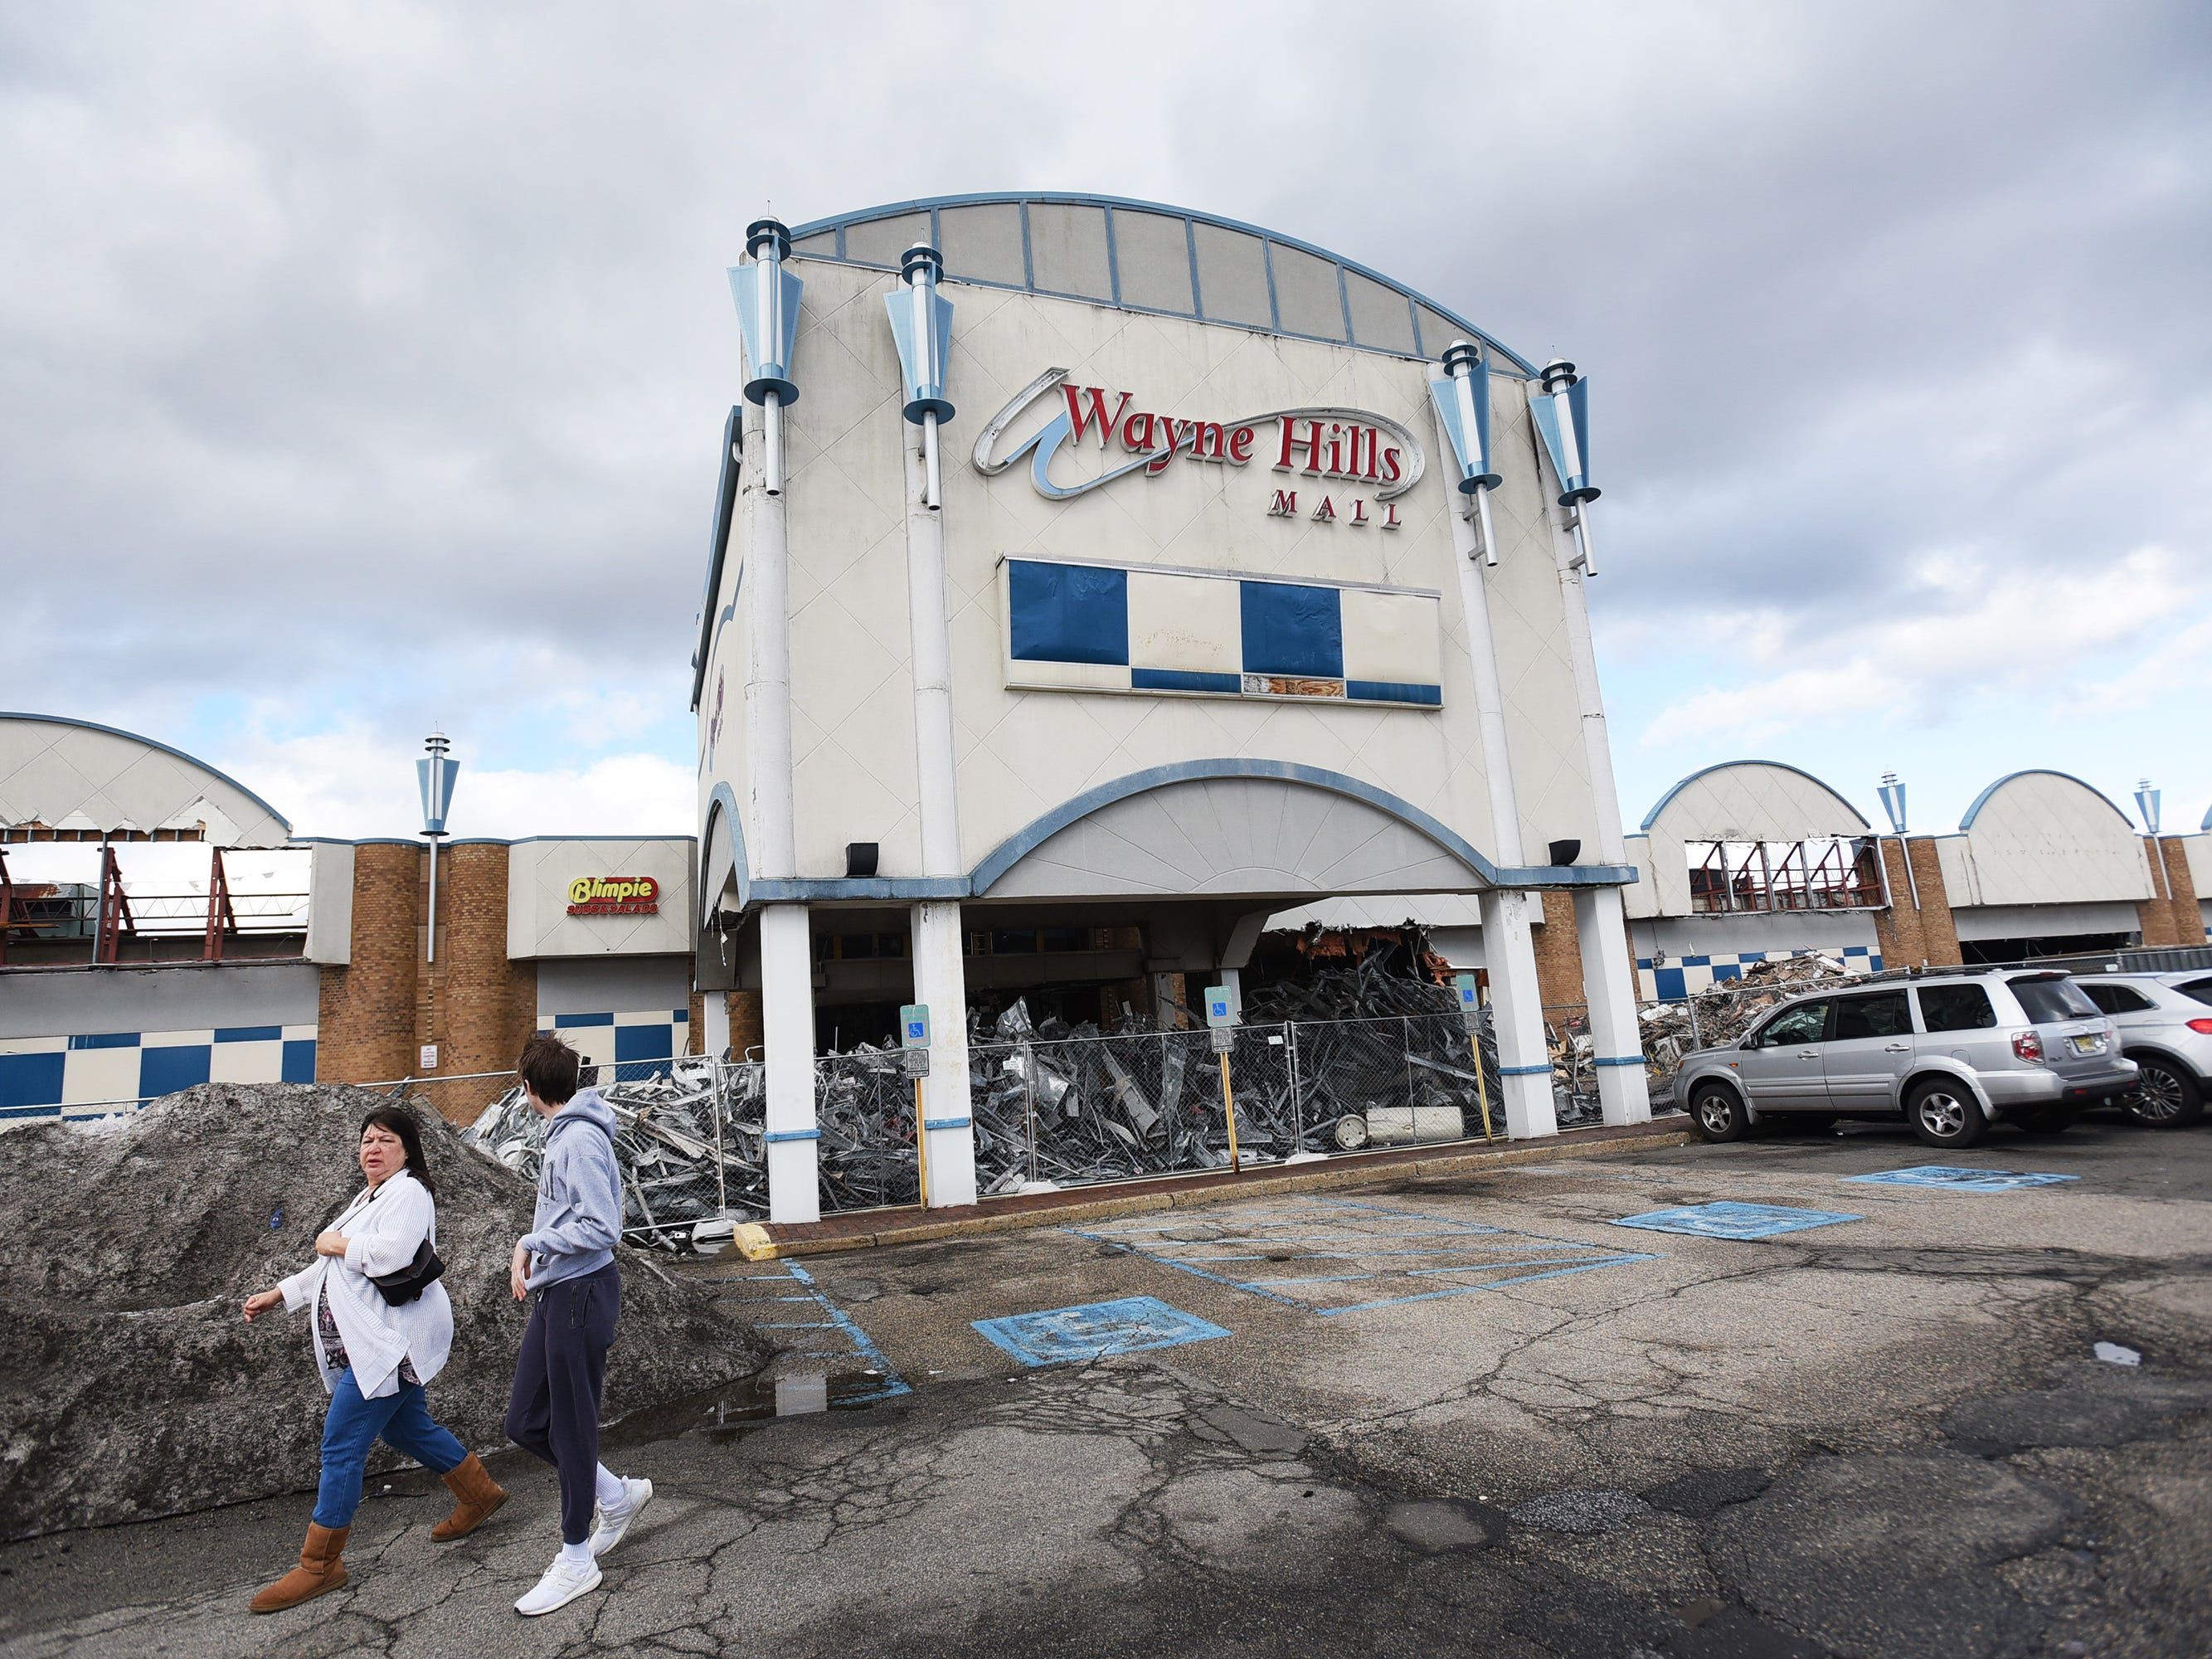 Shoppers pass by as Wayne Hills Mall is being demolished, photographed   in Wayne on 02/18/19.